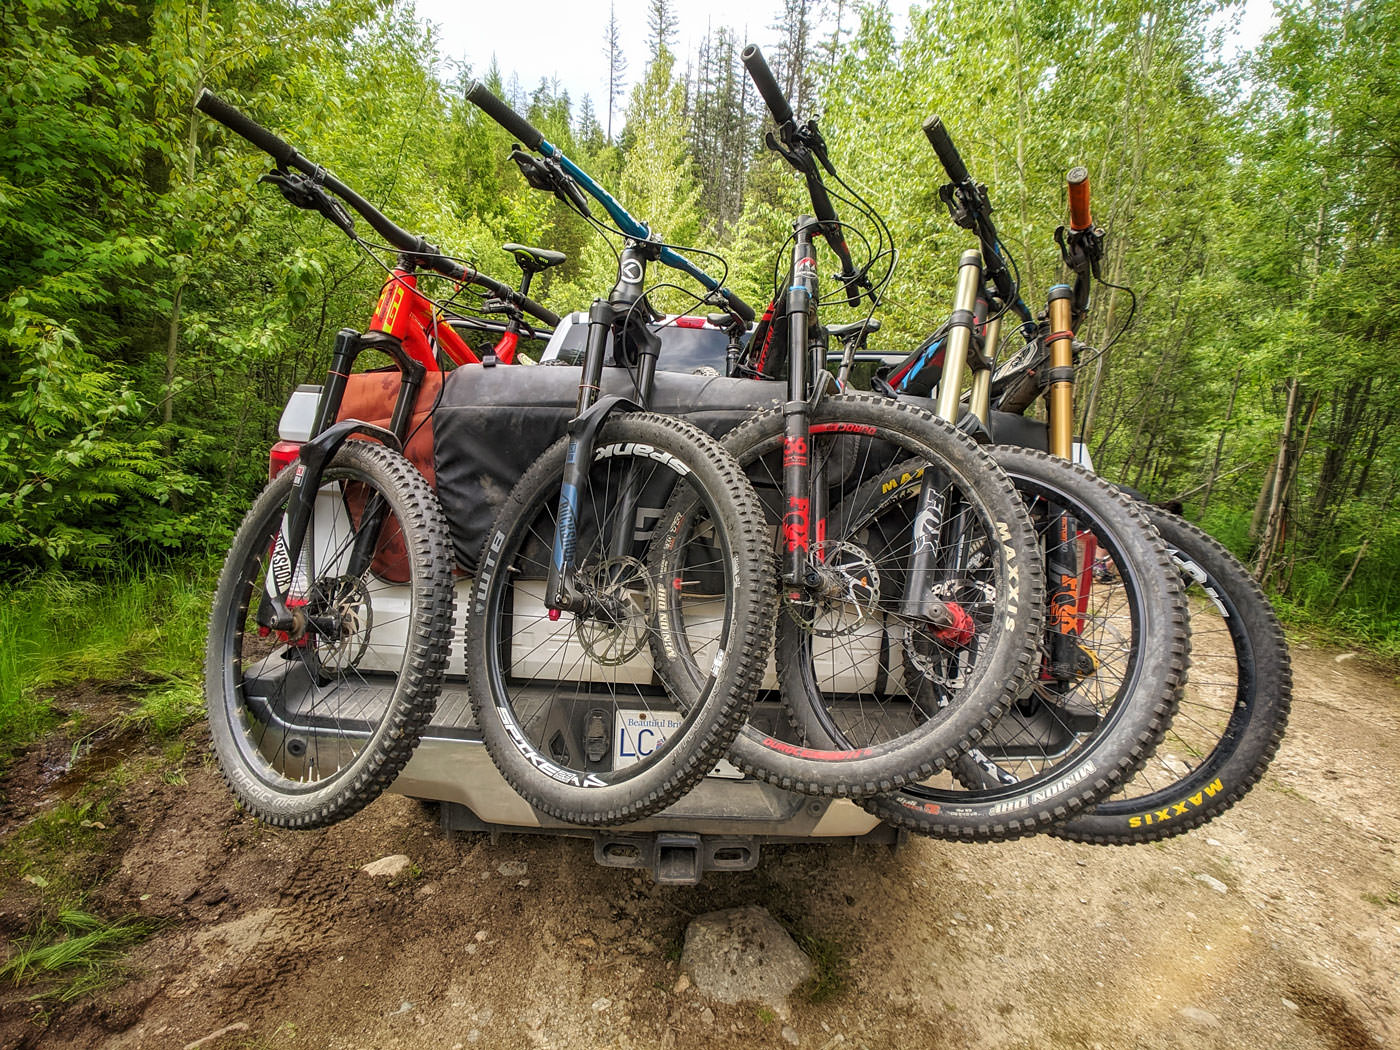 Mountain bikes loaded in the back of a truck on a forest service road.